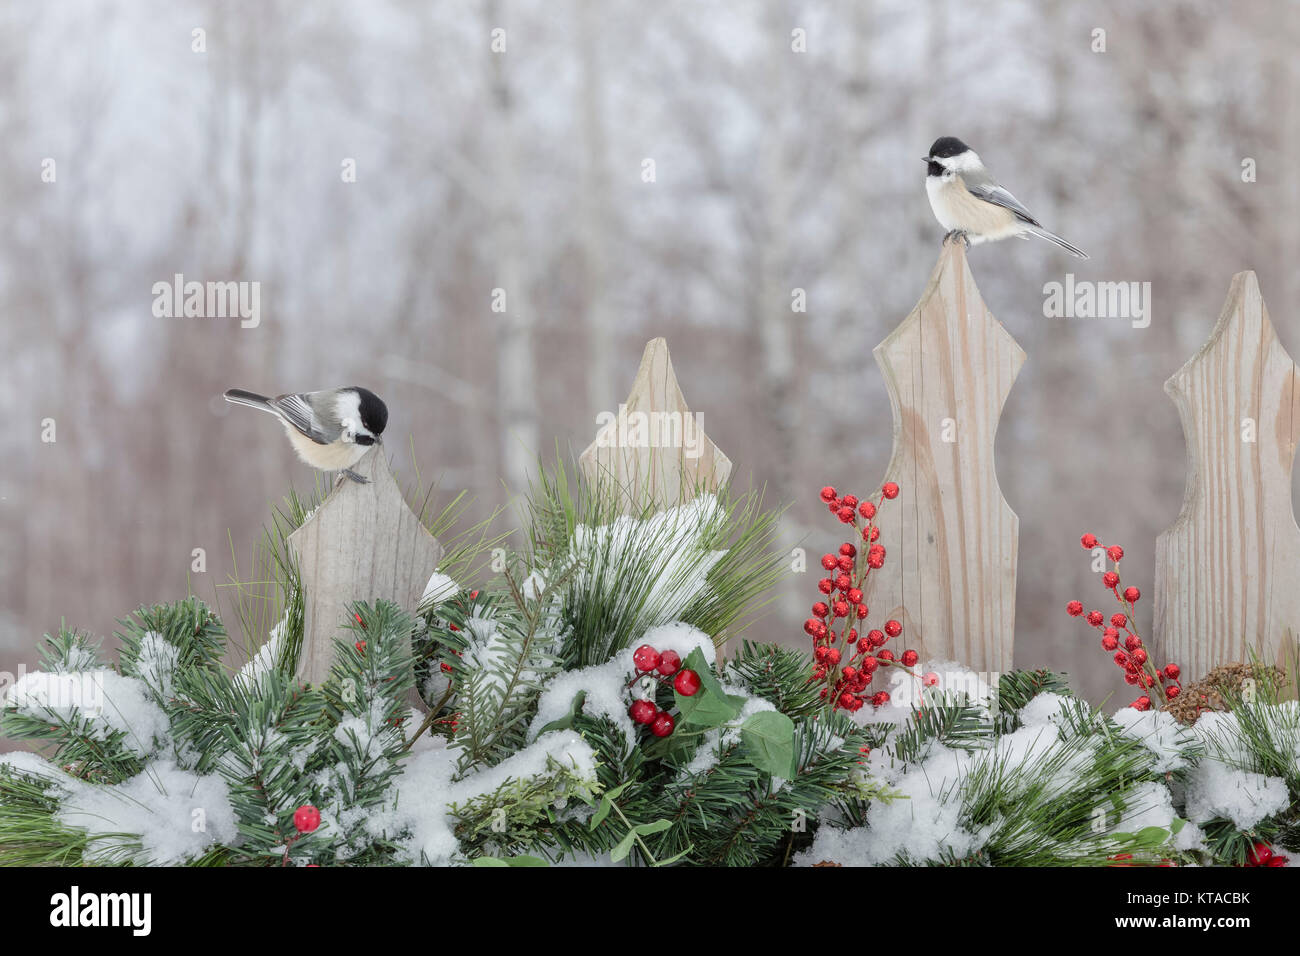 Black-capped chickadees on a festive backyard fence - Stock Image